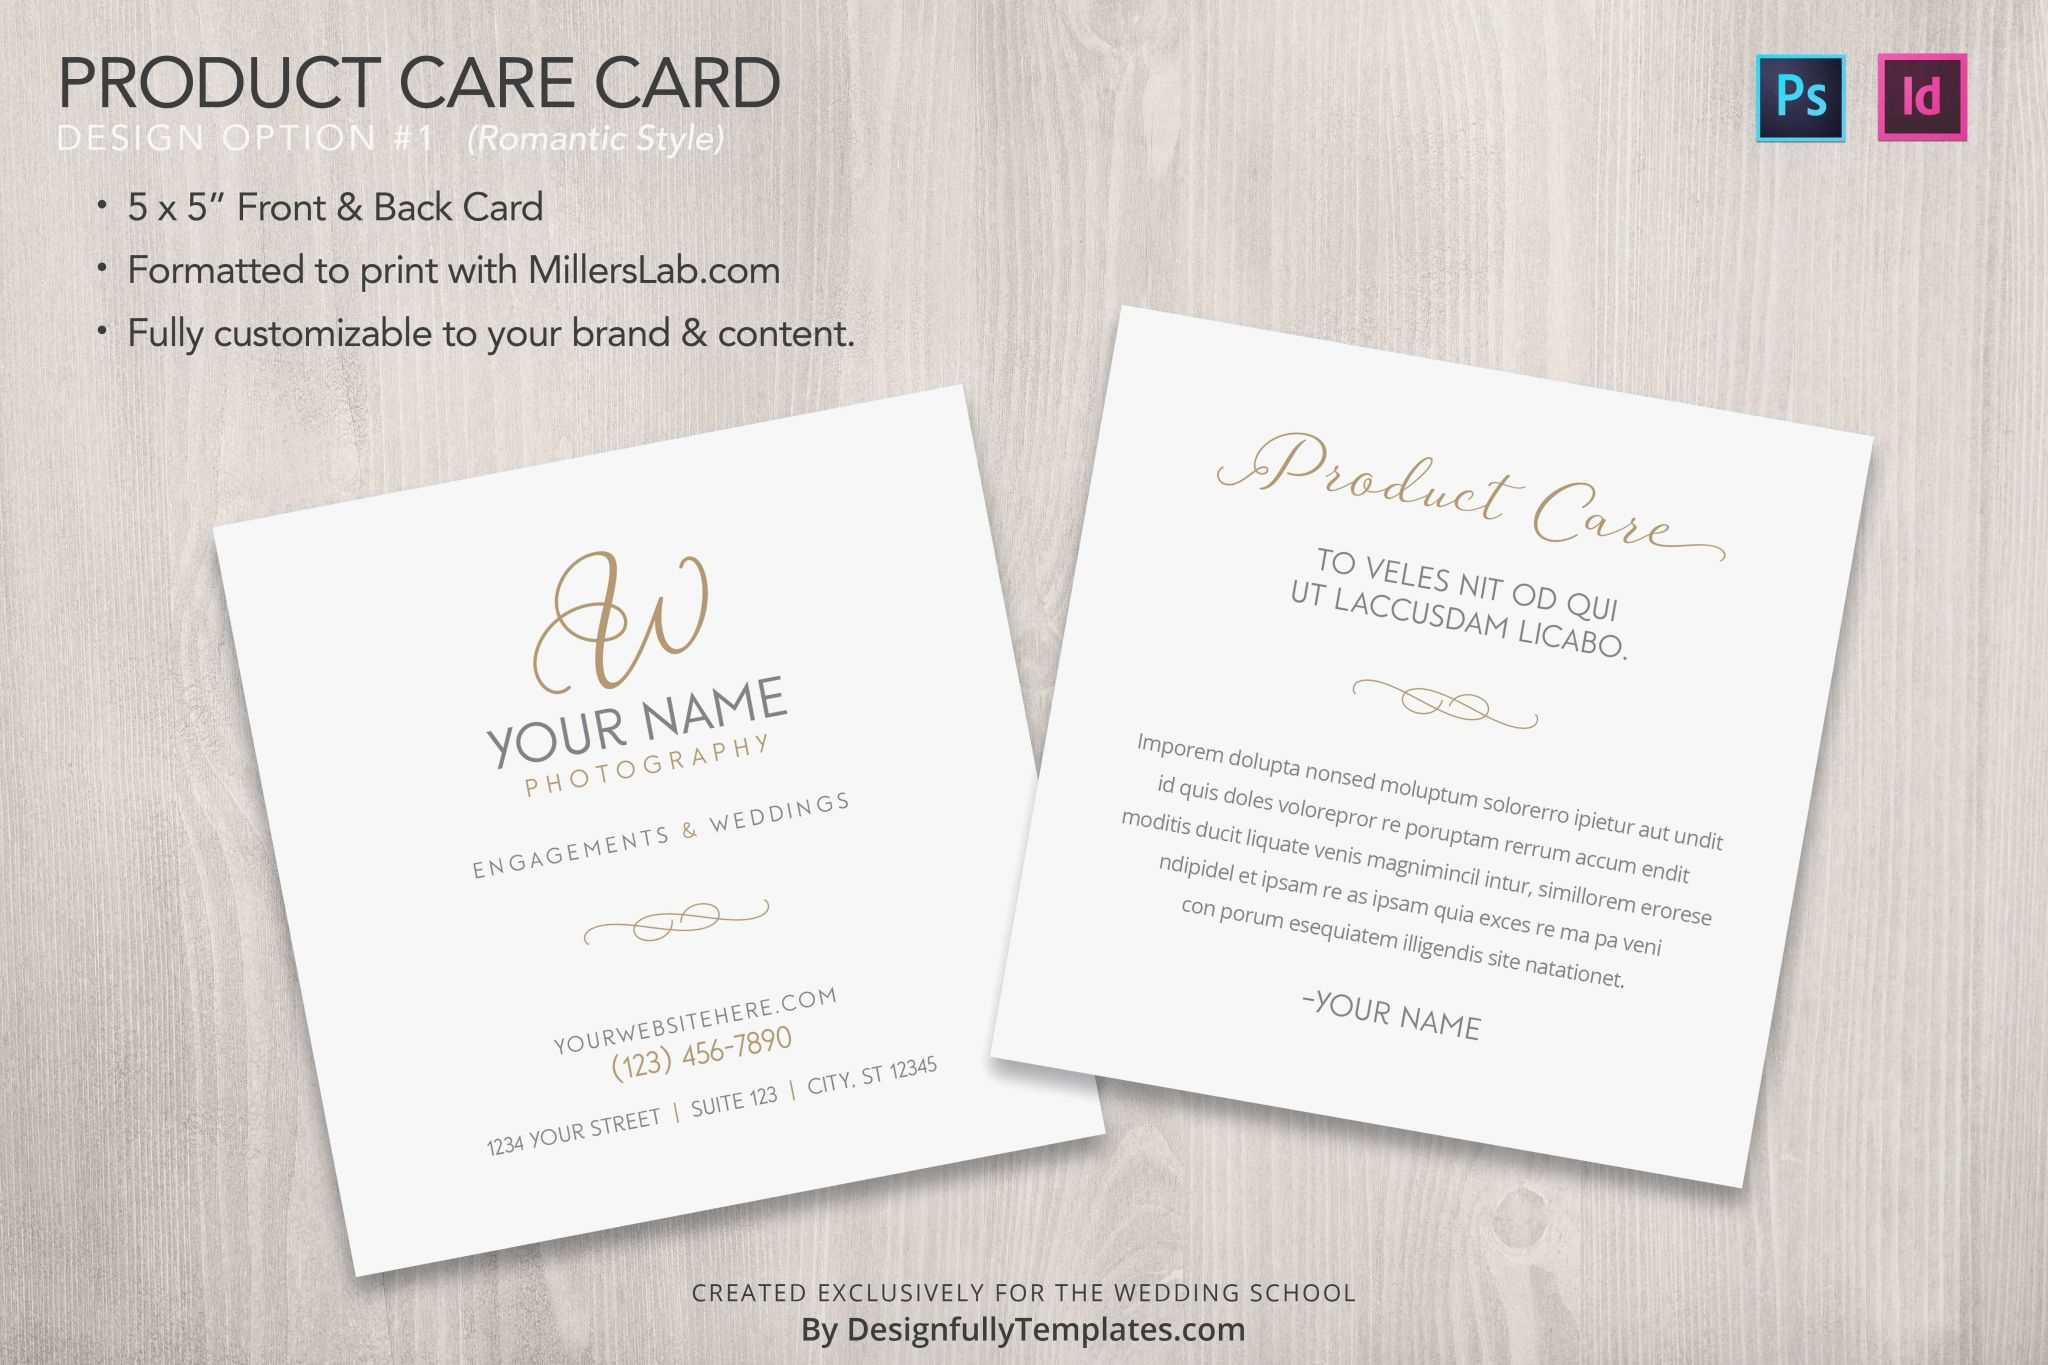 Free Place Card Templates 6 Per Page - Atlantaauctionco Inside Free Place Card Templates 6 Per Page